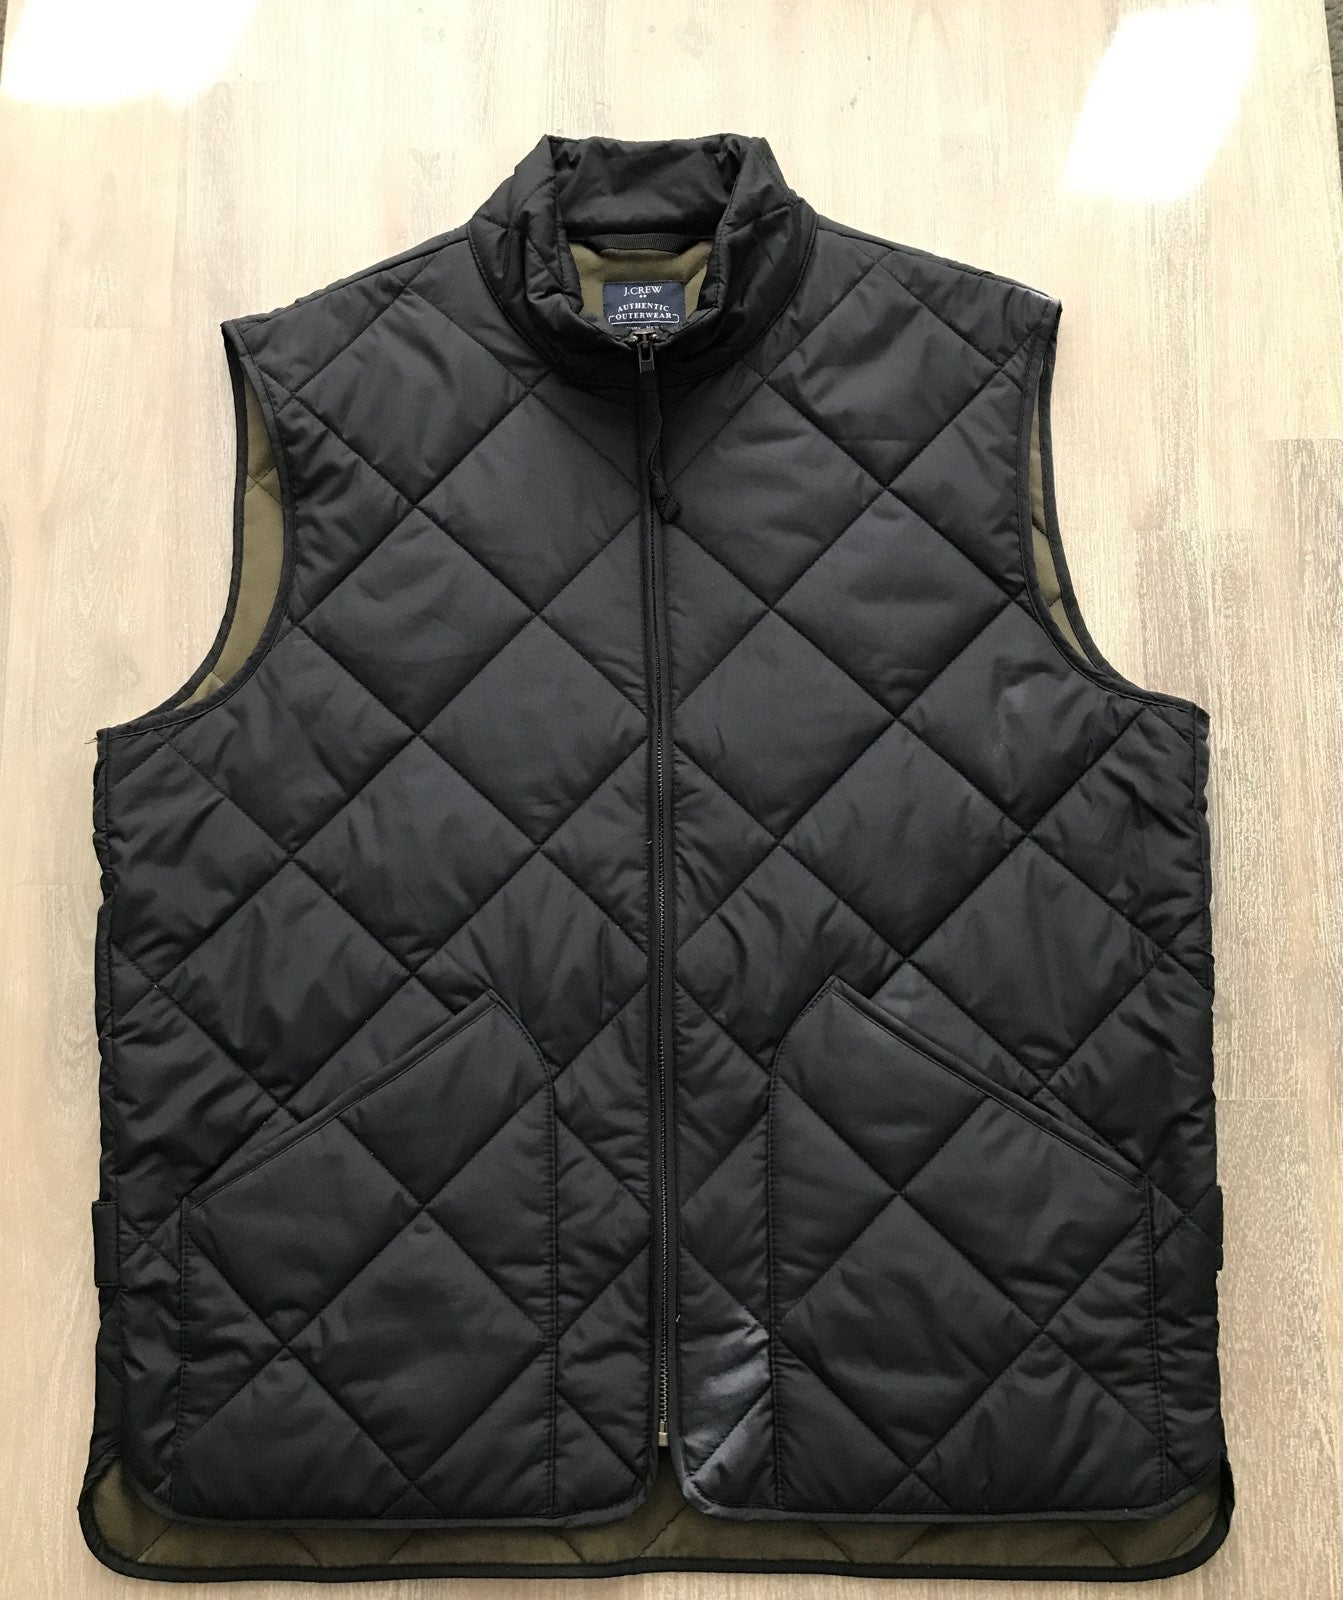 Men's outerwear vest zip front black J.C